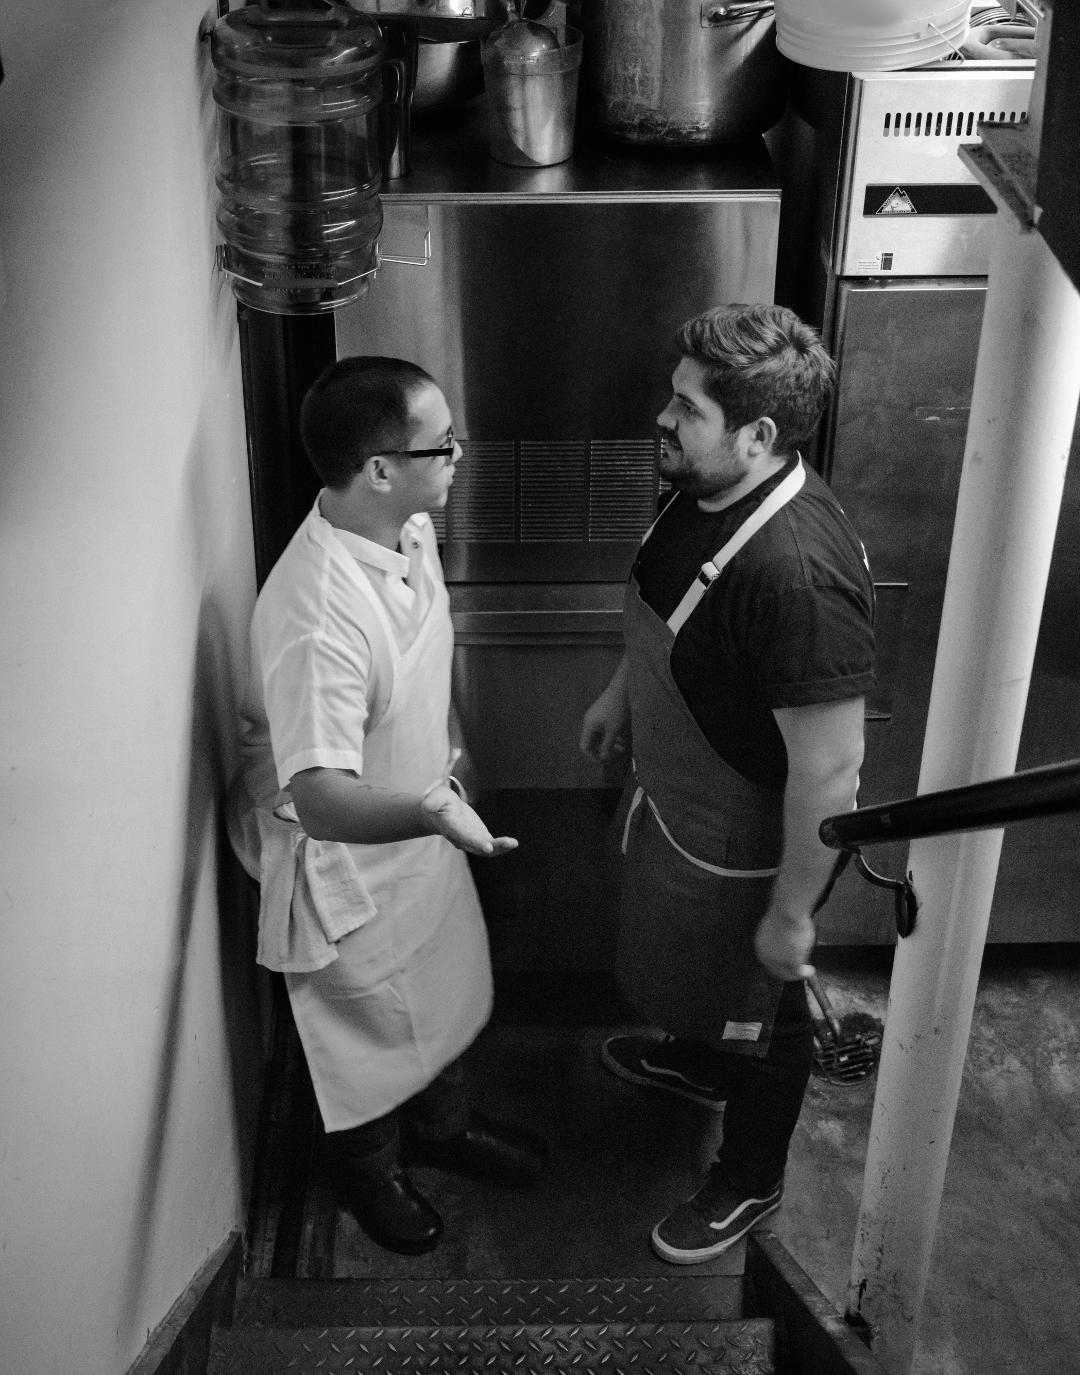 Jeremiah Stone and Fabián von Hauske, wine lovers and authors of A Very Serious Cookbook